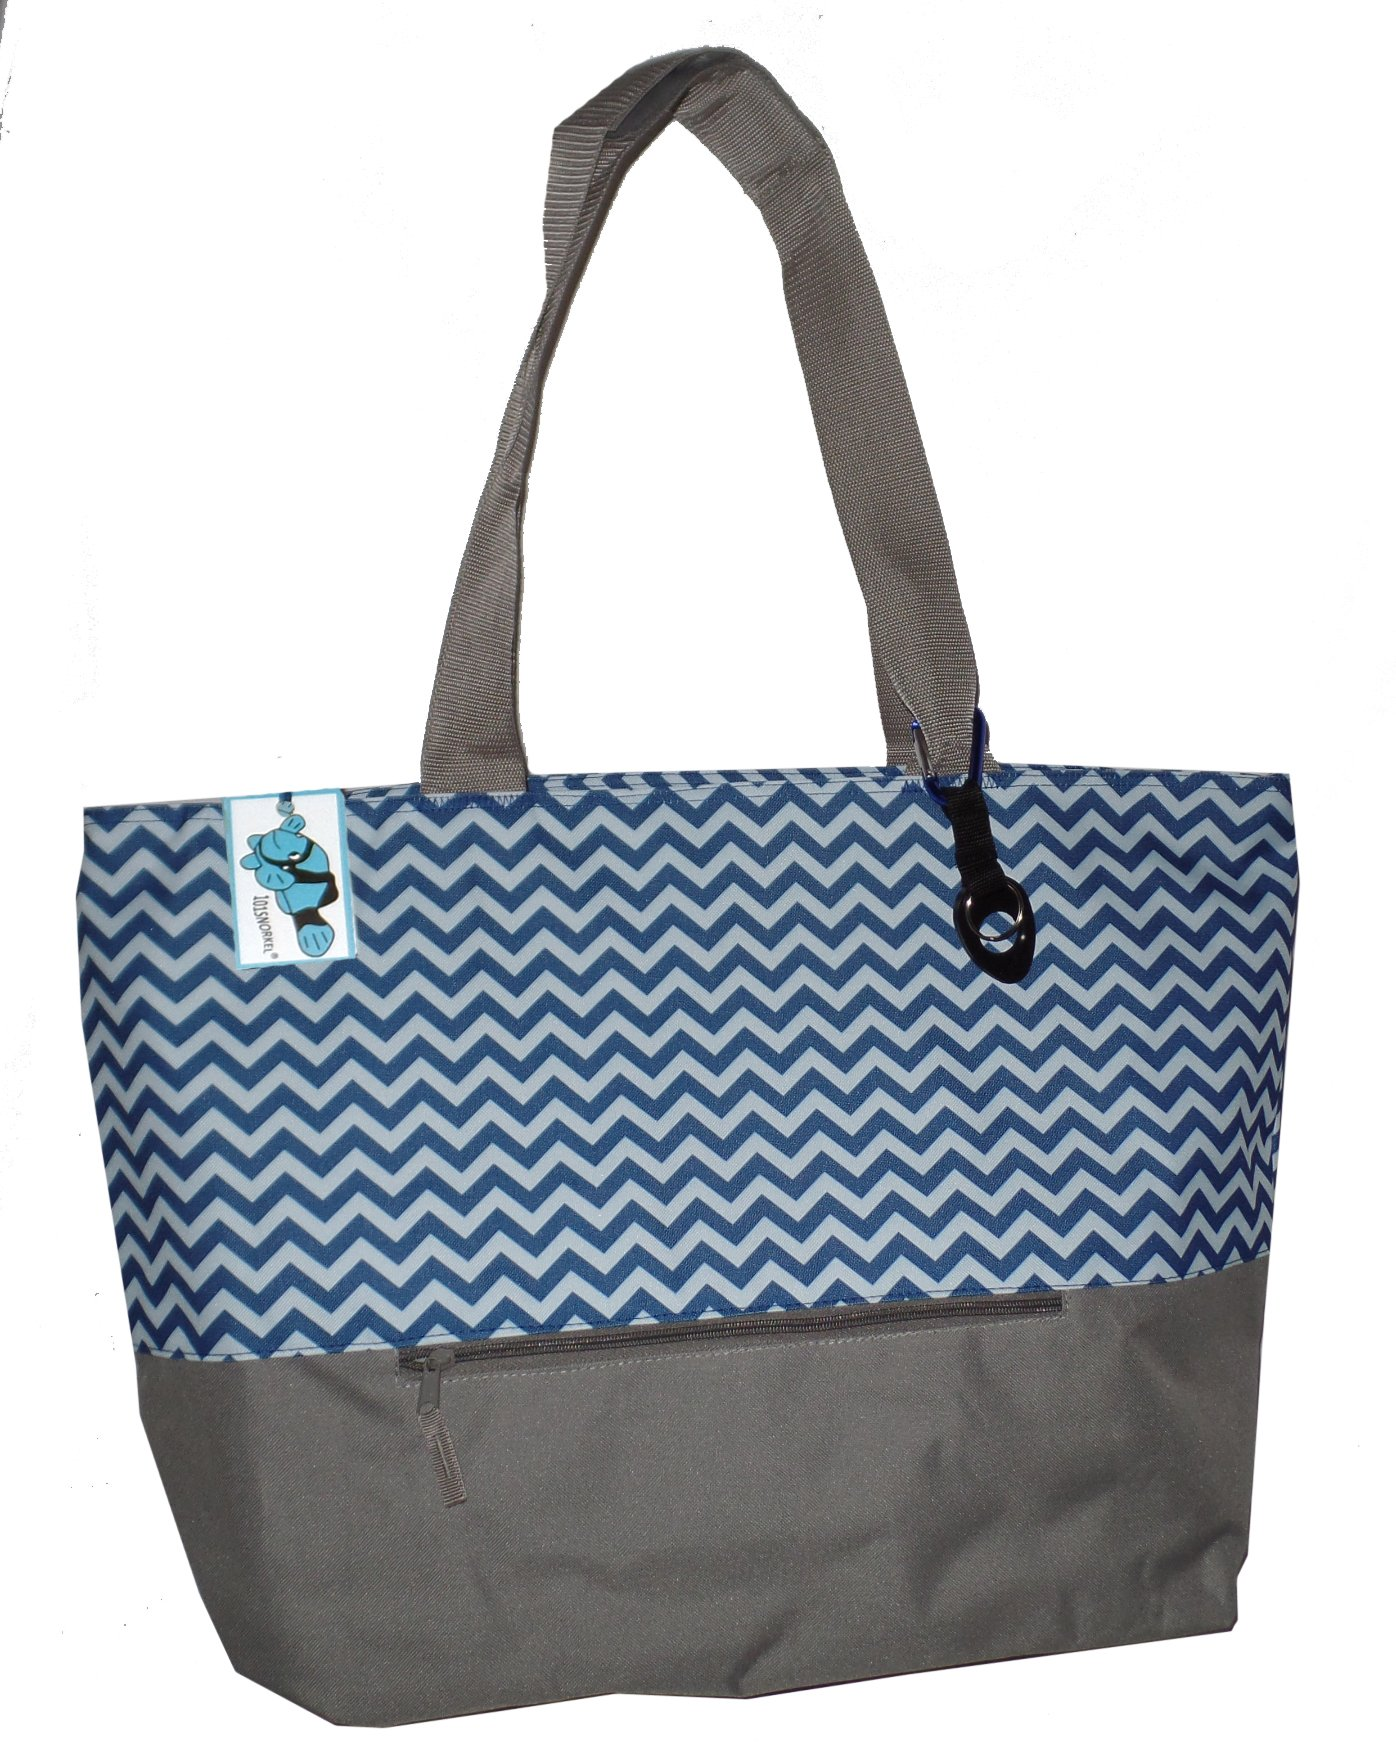 XL Beach Tote Chevron Print Weekender Bag with Mesh Webbed Handles and Outer Zippered PocketCan Be Personalized (Blank, Navy Blue)